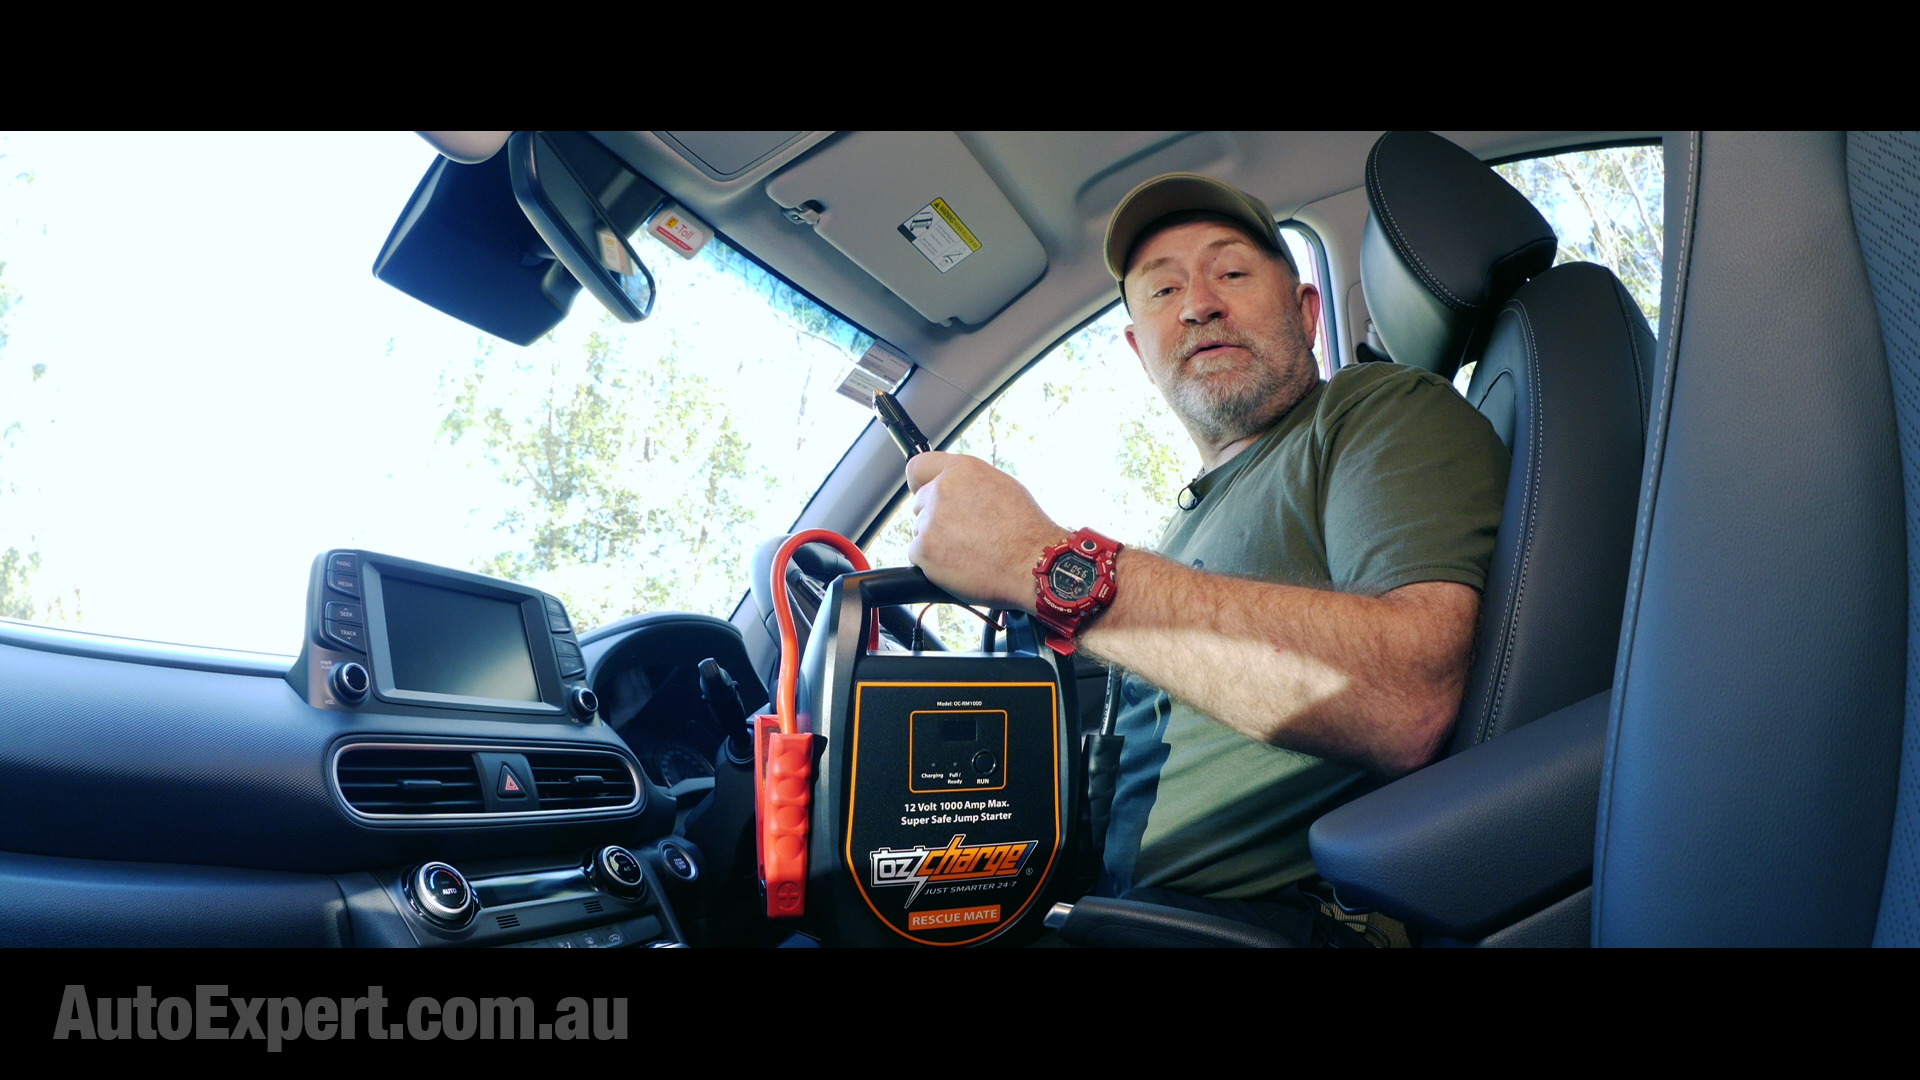 Rescue Mate comes with 12-volt cigarette and USB power inputs - both cables are included